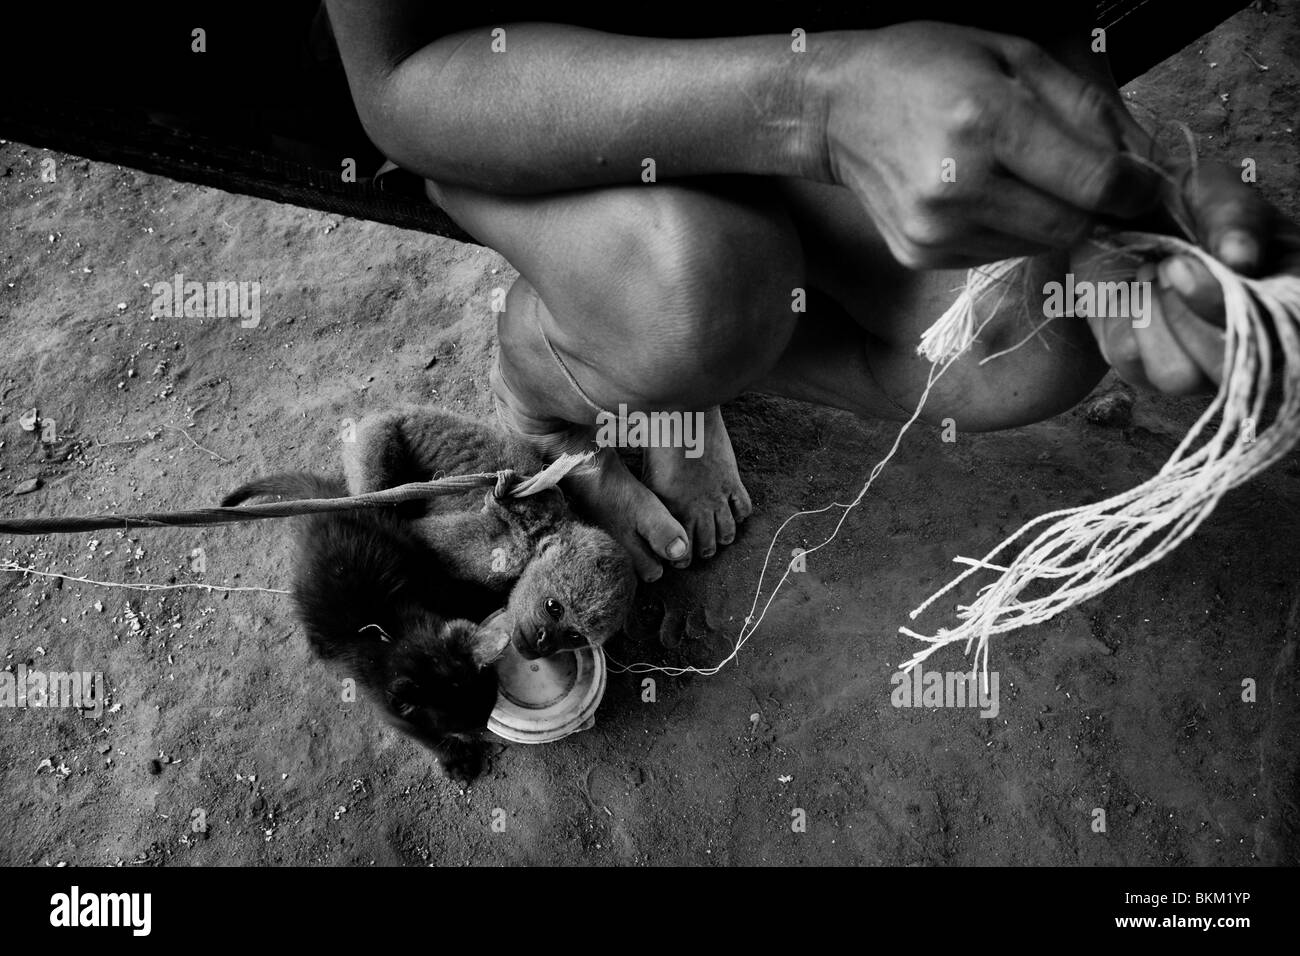 A Nukak woman works with fibres to make a hammock in a refugee camp close to San Jose del Guaviare, Colombia. - Stock Image